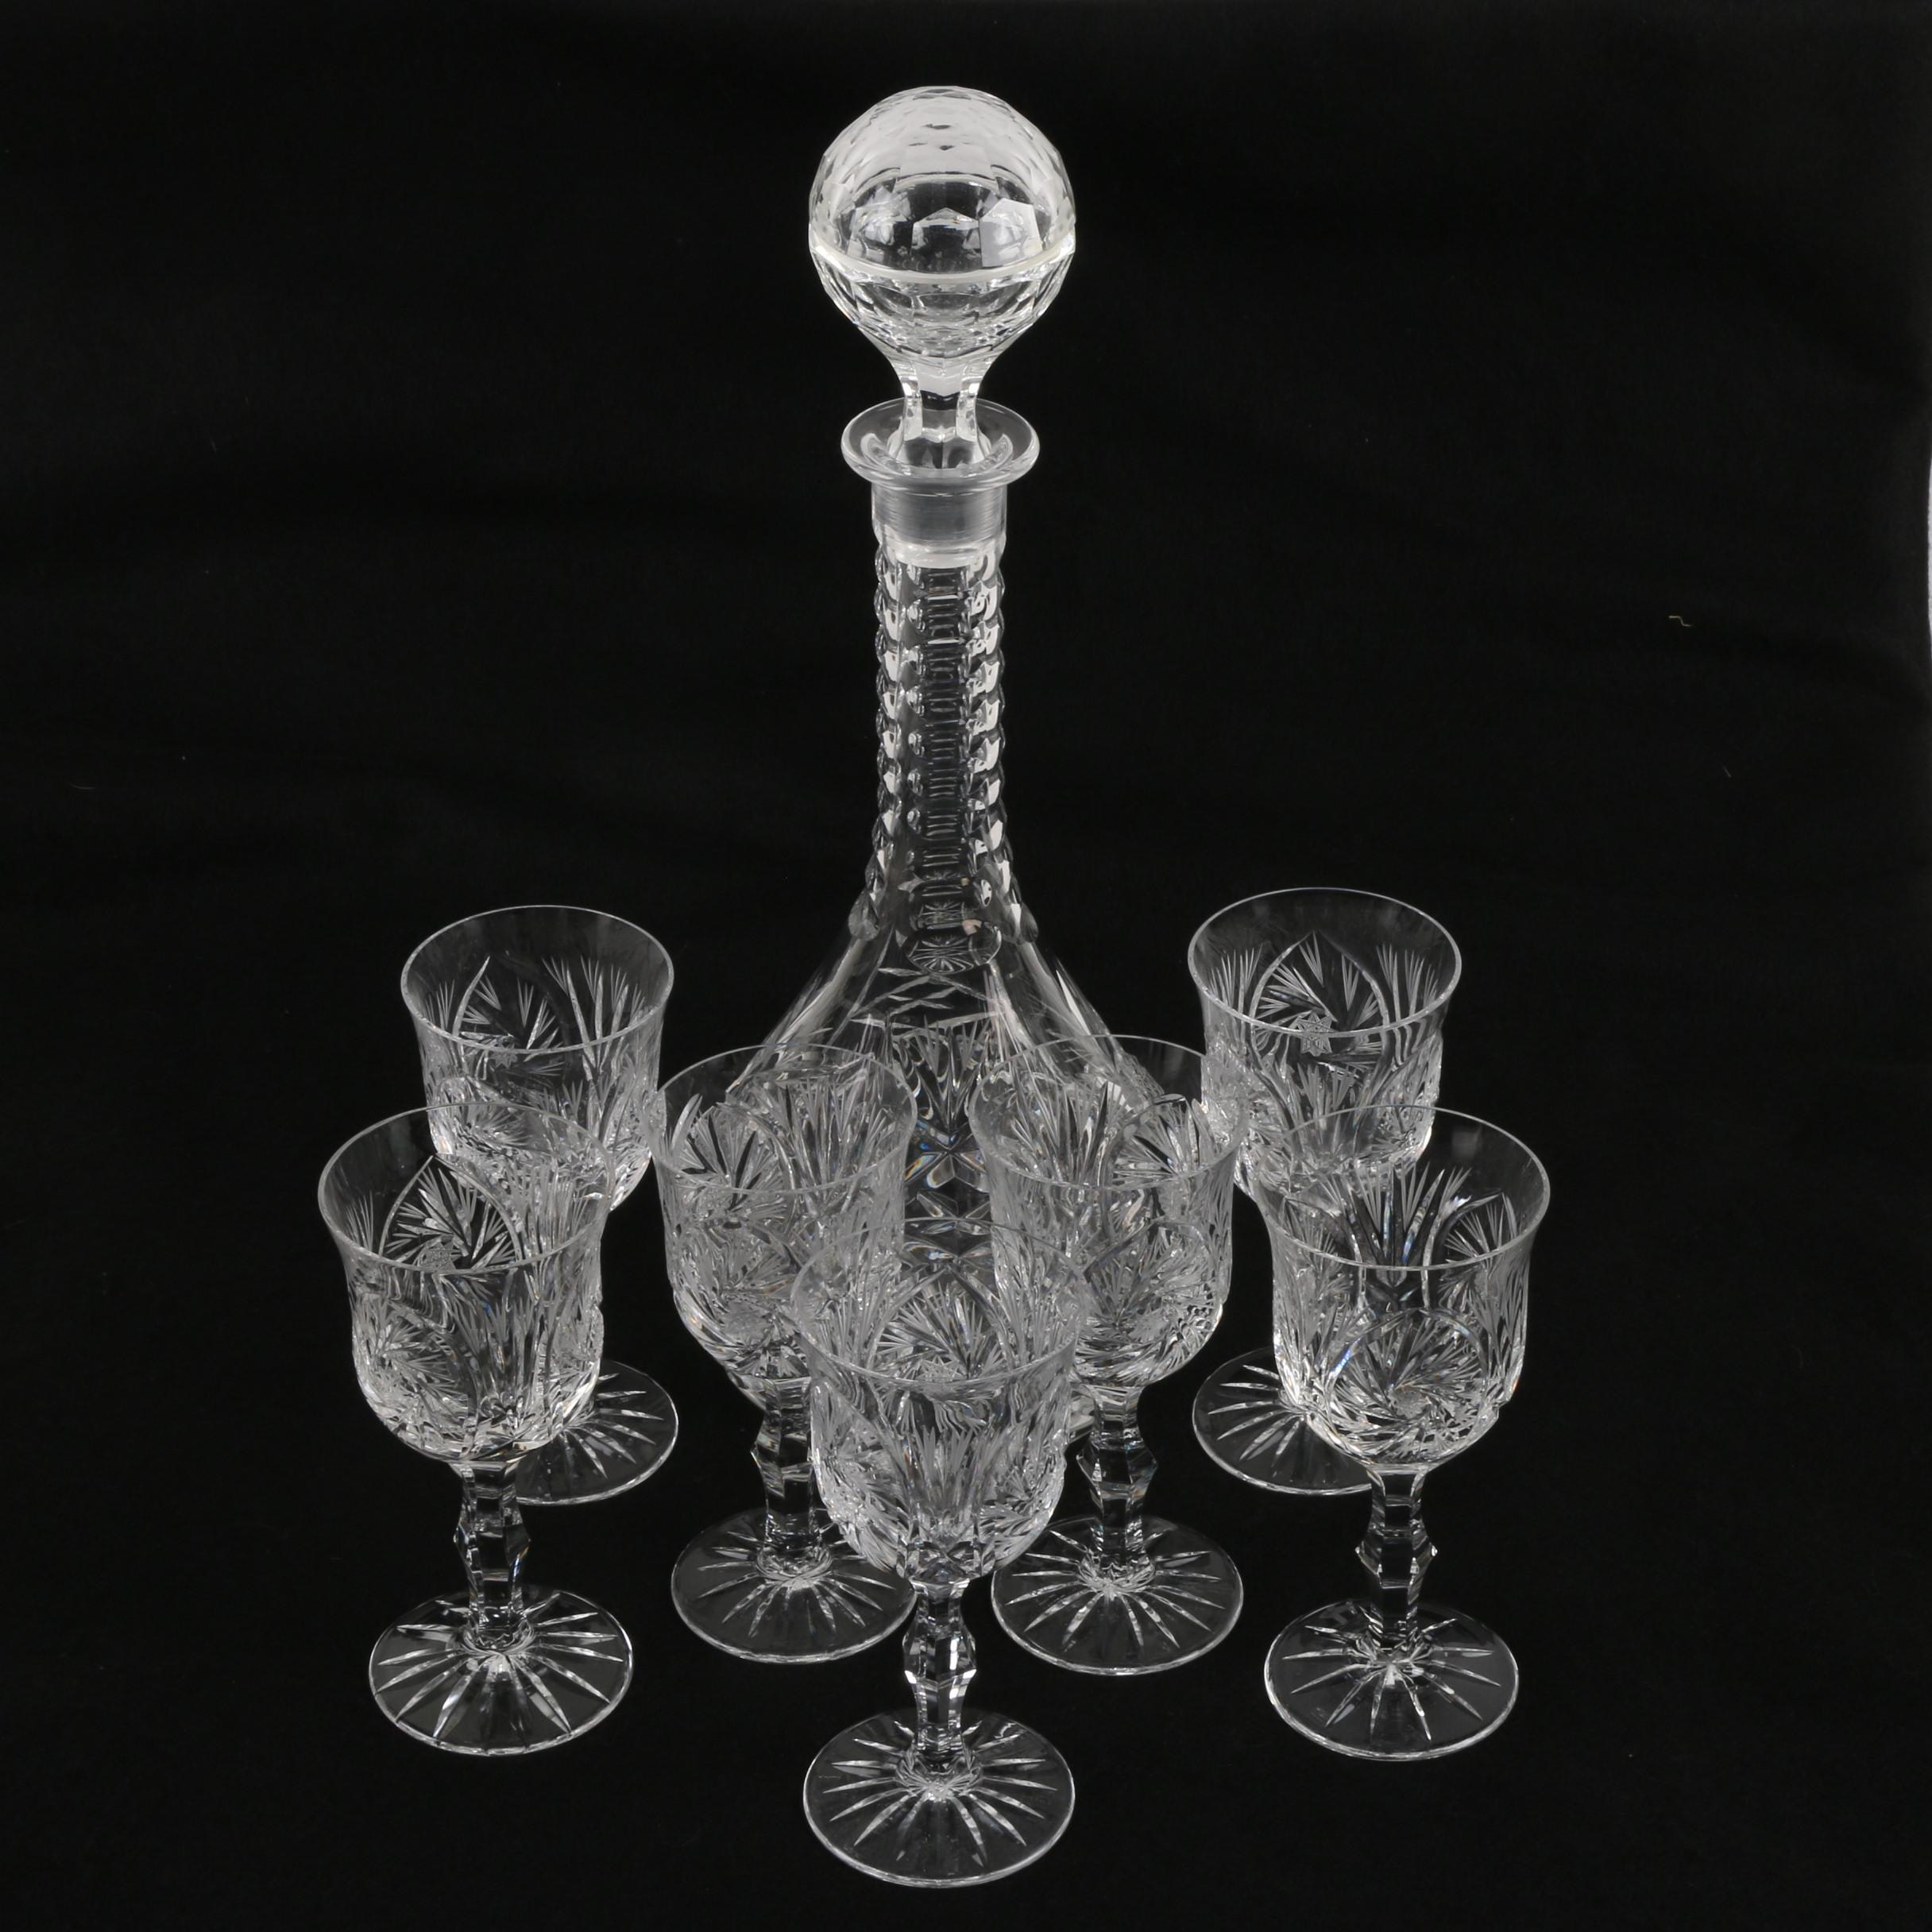 Buzz Starr Motif Crystal Decanter with Cordial Glasses